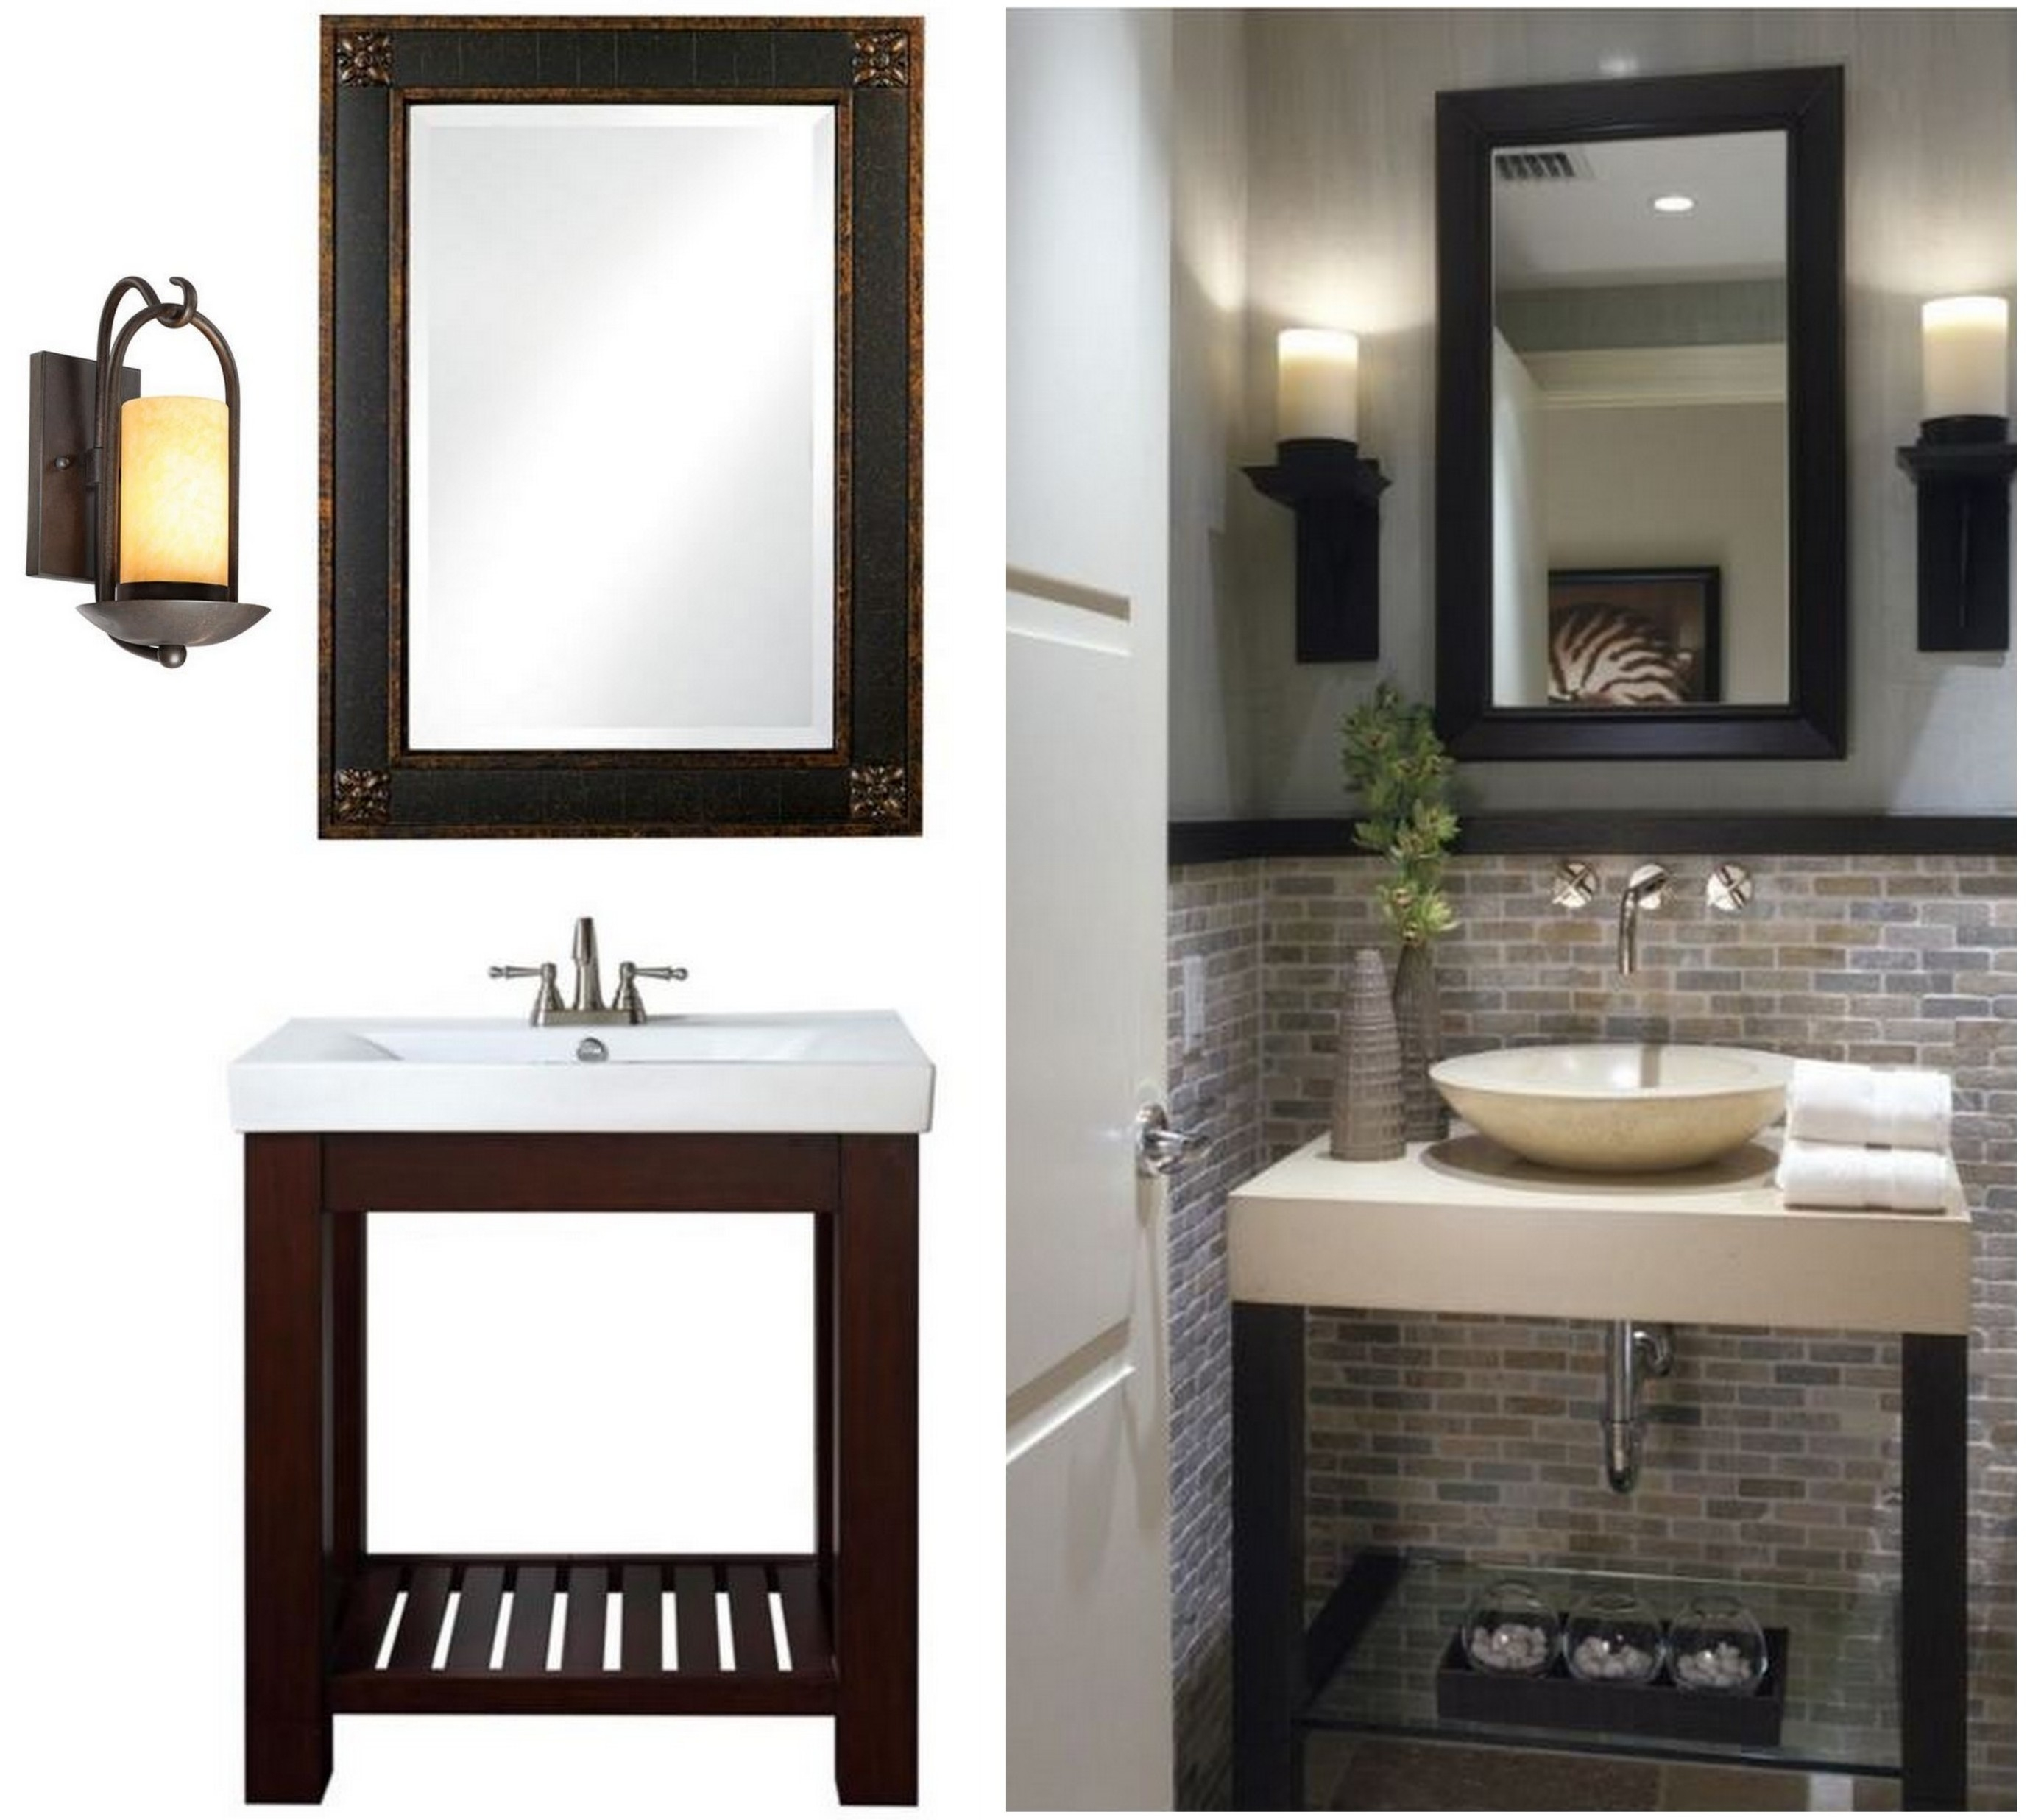 Permalink to Small Bathroom Vanity Mirror Ideas